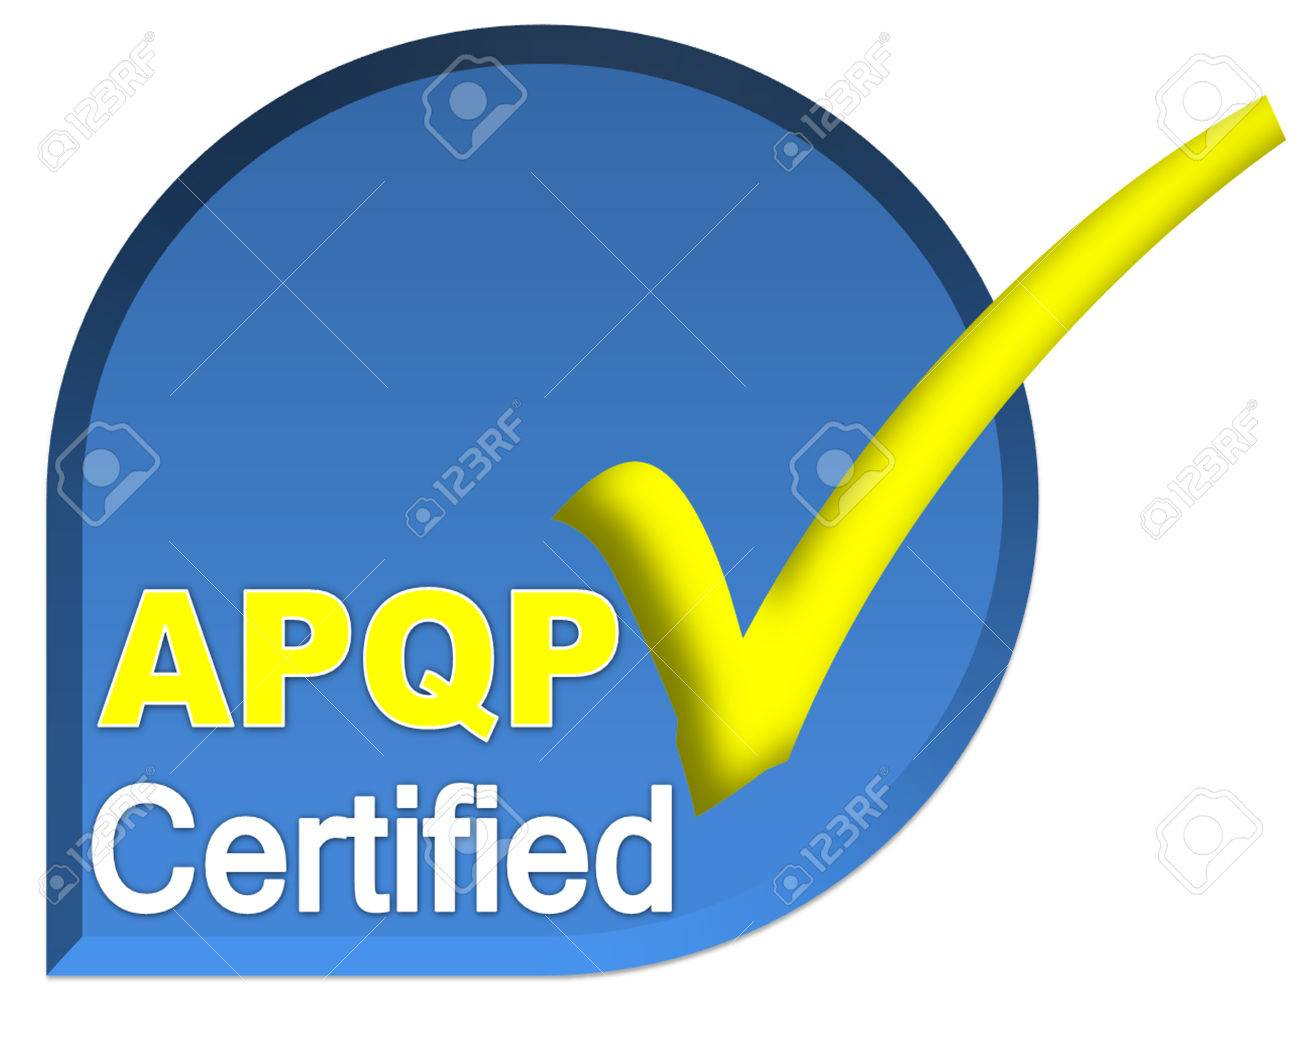 Certificate Logo Or Symbol Of Apqp System On Blue Color Stock Photo